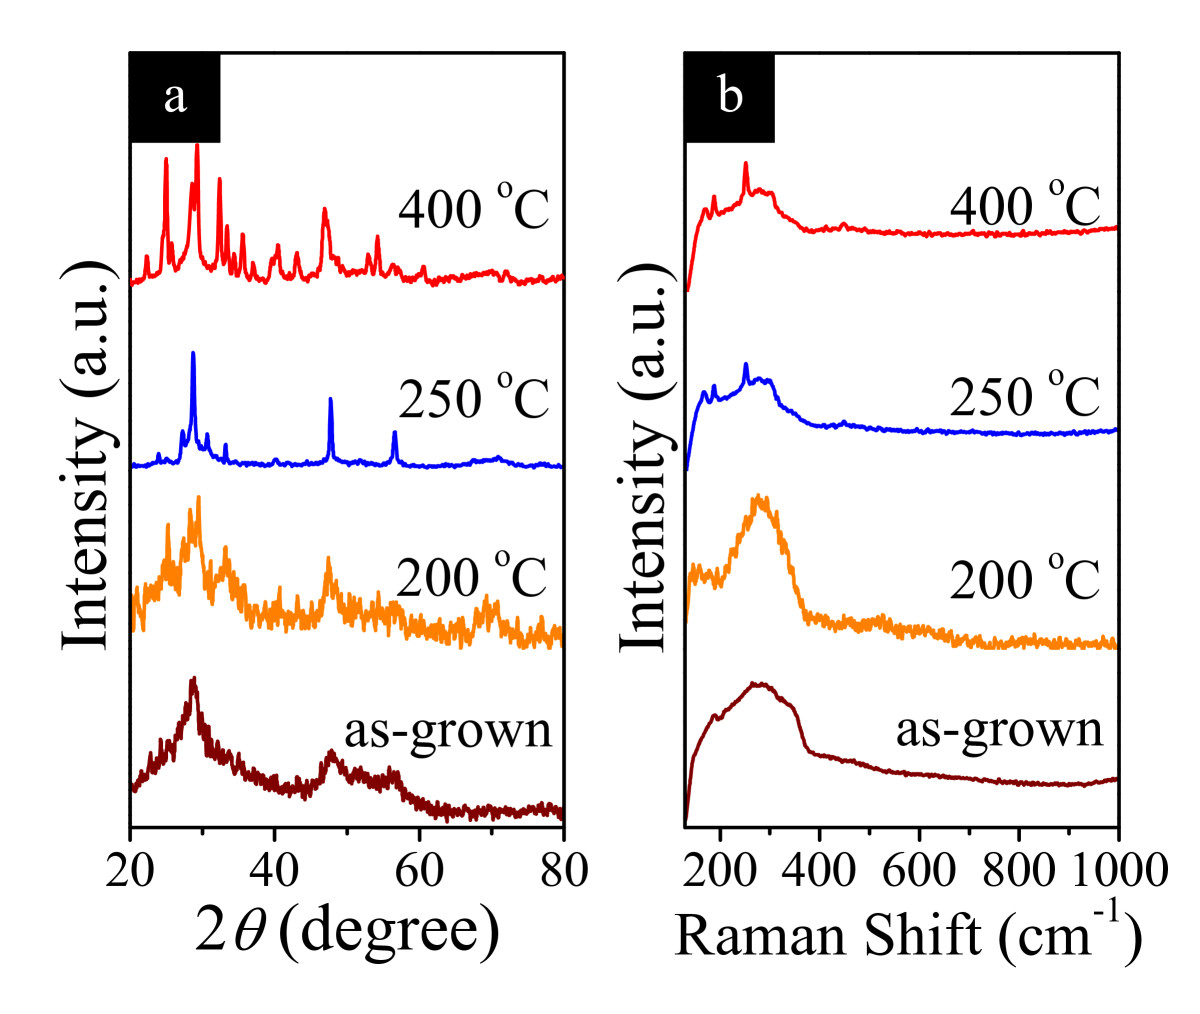 http://static-content.springer.com/image/art%3A10.1186%2F1556-276X-7-199/MediaObjects/11671_2011_Article_745_Fig5_HTML.jpg